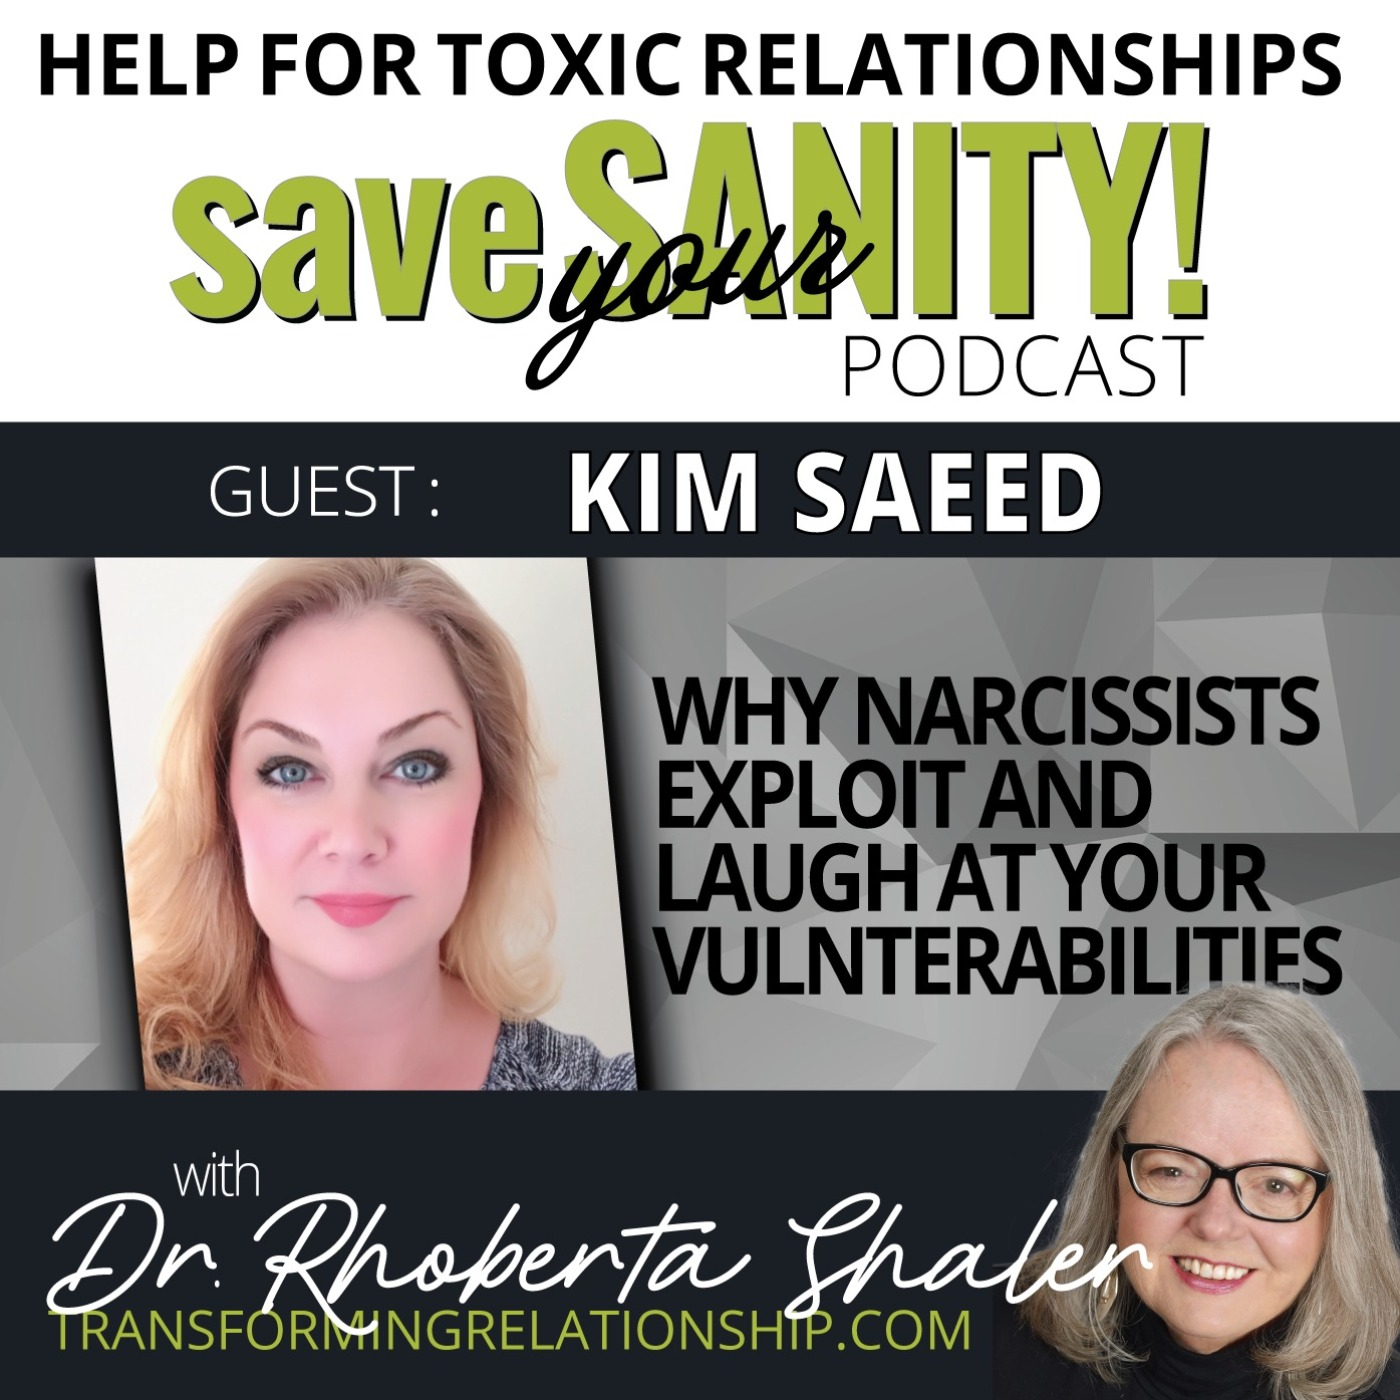 Why Narcissists Exploit And Laugh At Your Vulnerabilities  Guest: KIM SAEED